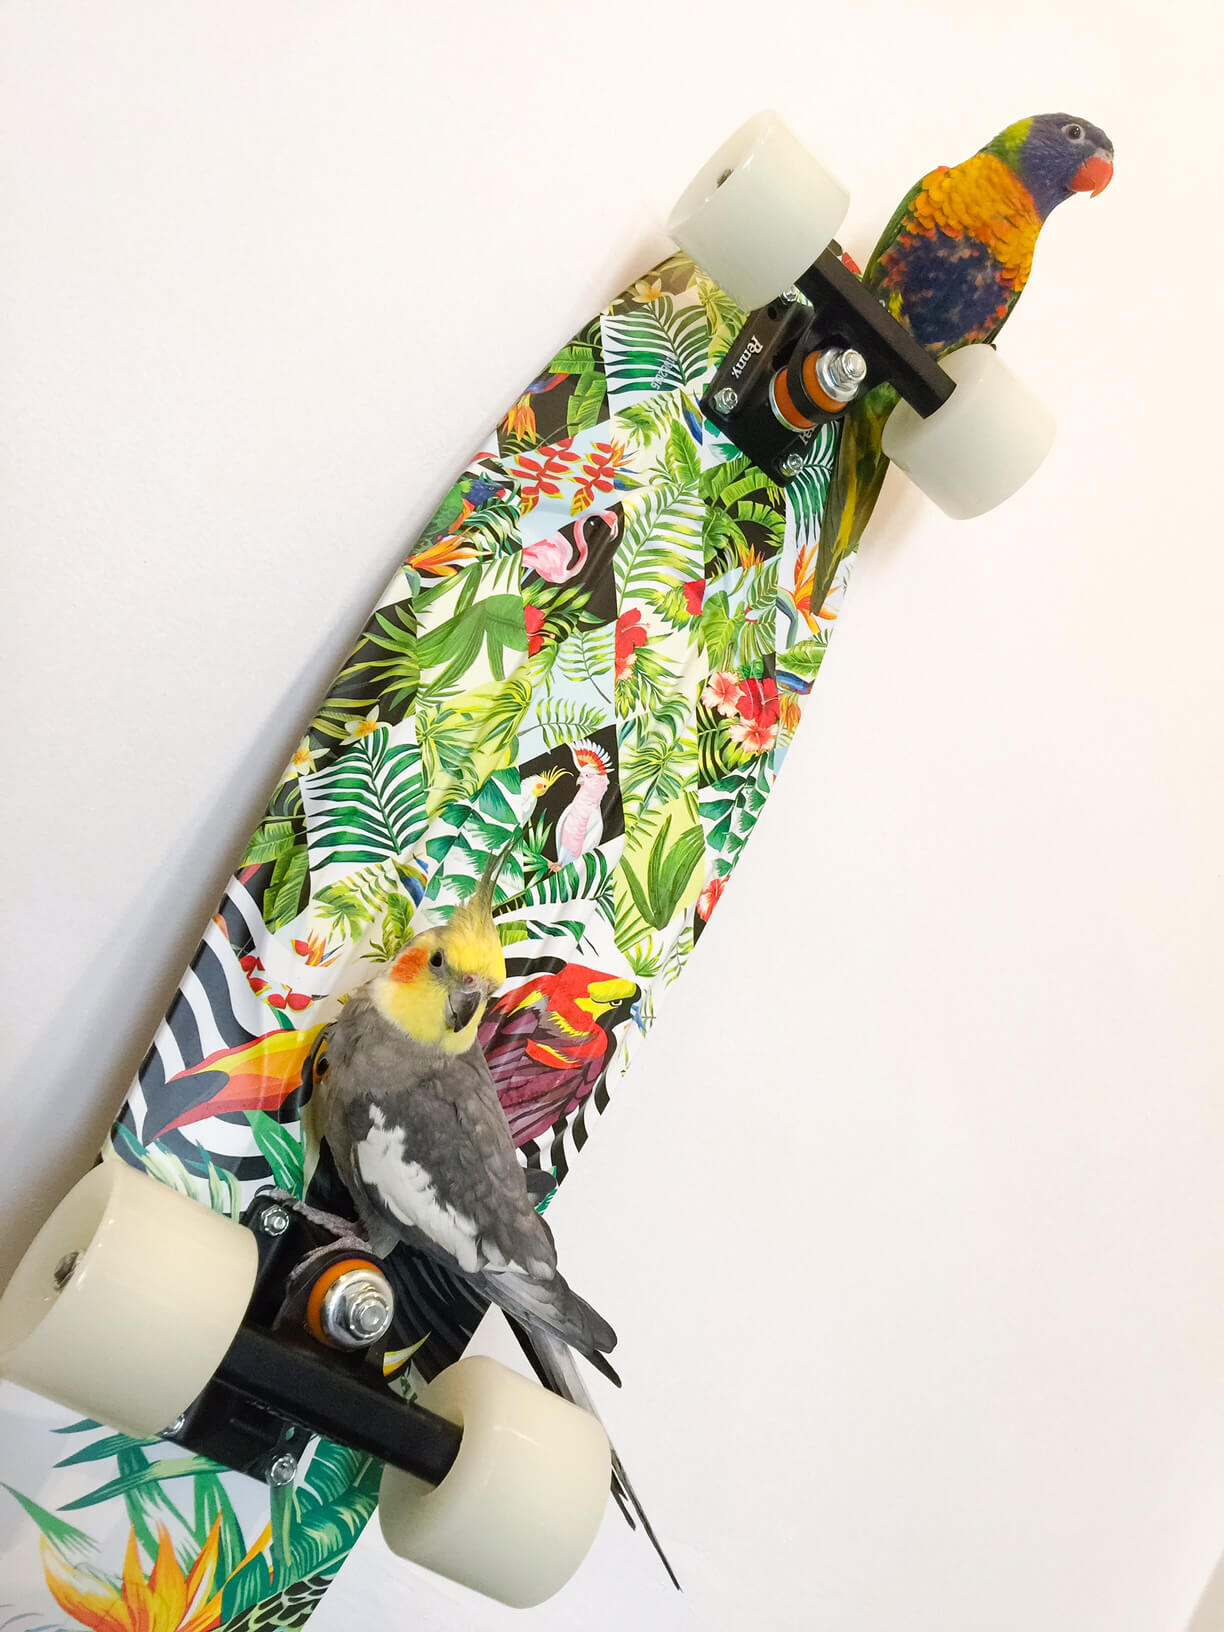 Birds on Boards - Penny Skateboard Australia - Perth Blogger Katie Rebekah